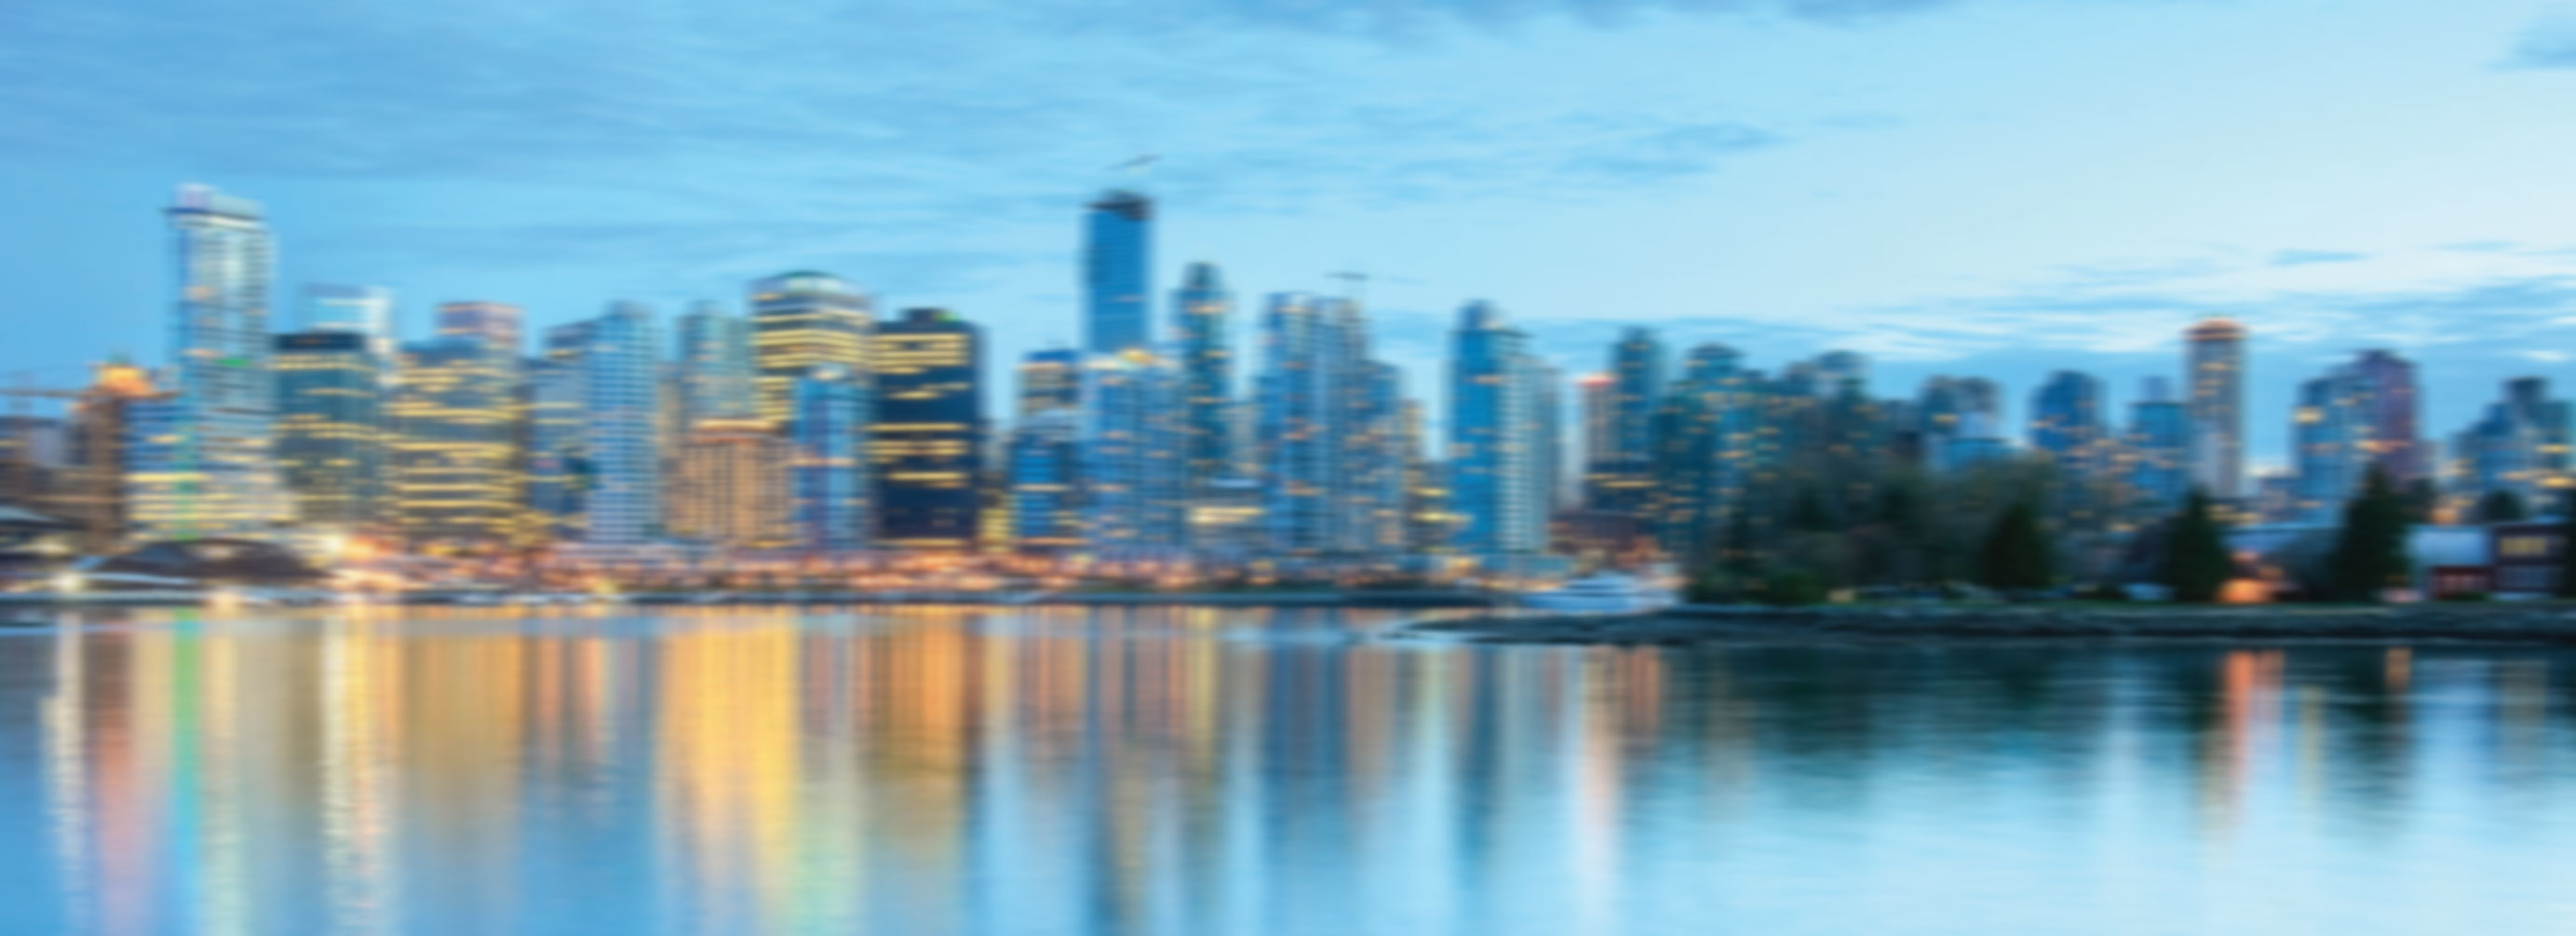 vancouver-background